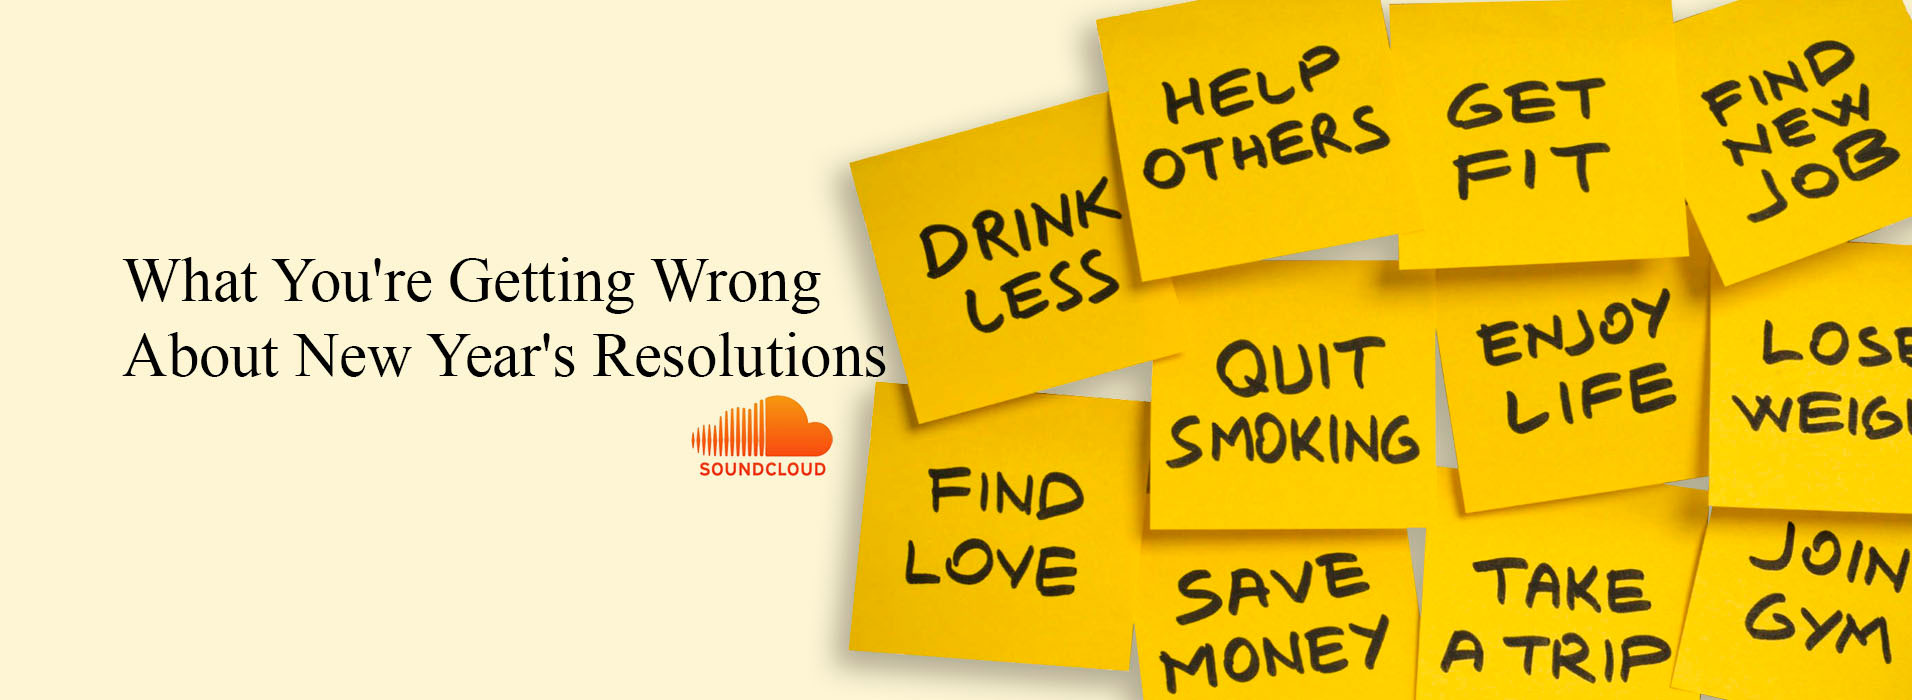 What You're Getting Wrong About New Year's Resolutions